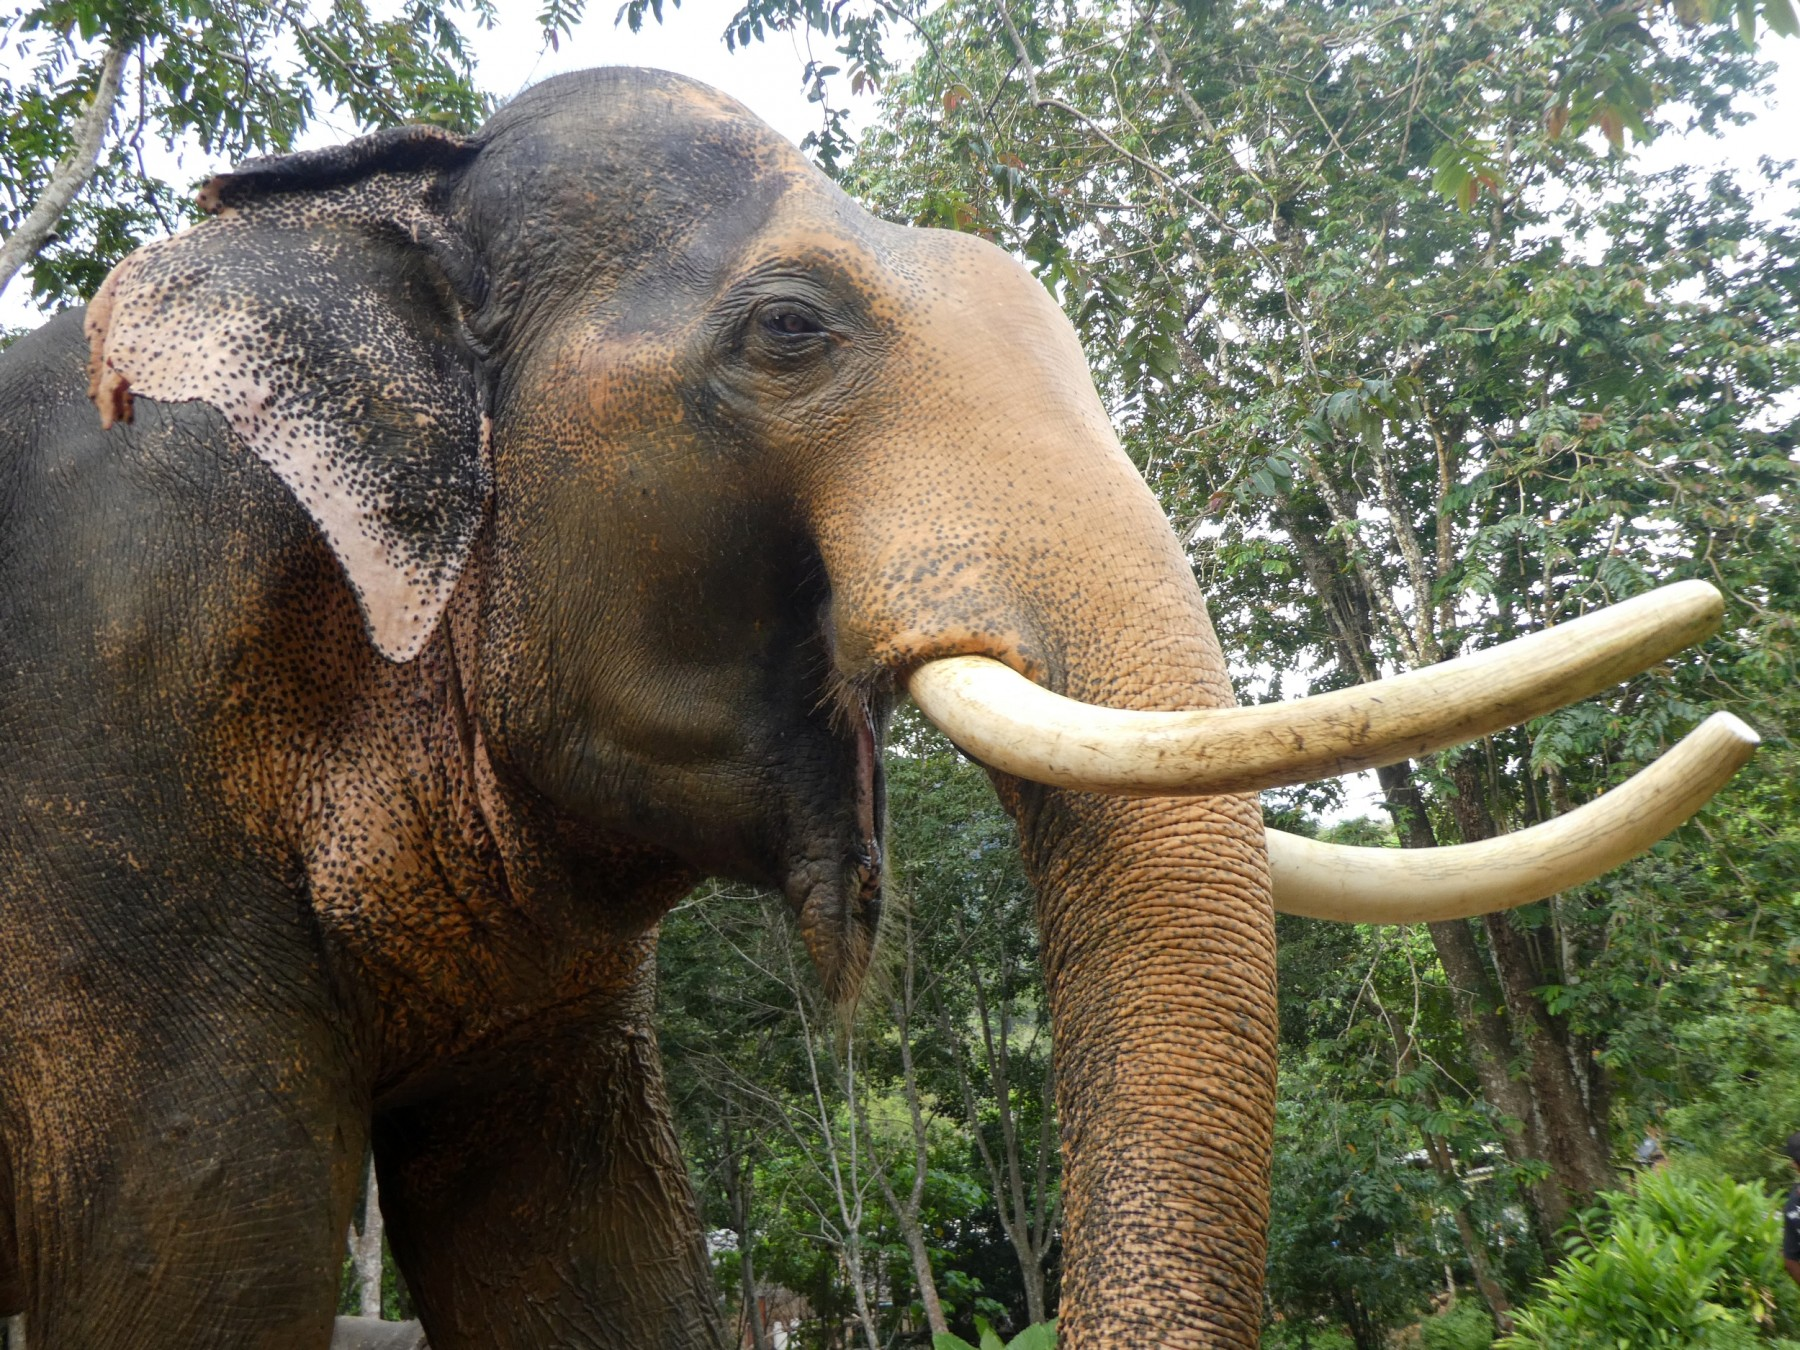 Elephant at high welfare venue in Koh Lanta, Thailand - World Animal Protection